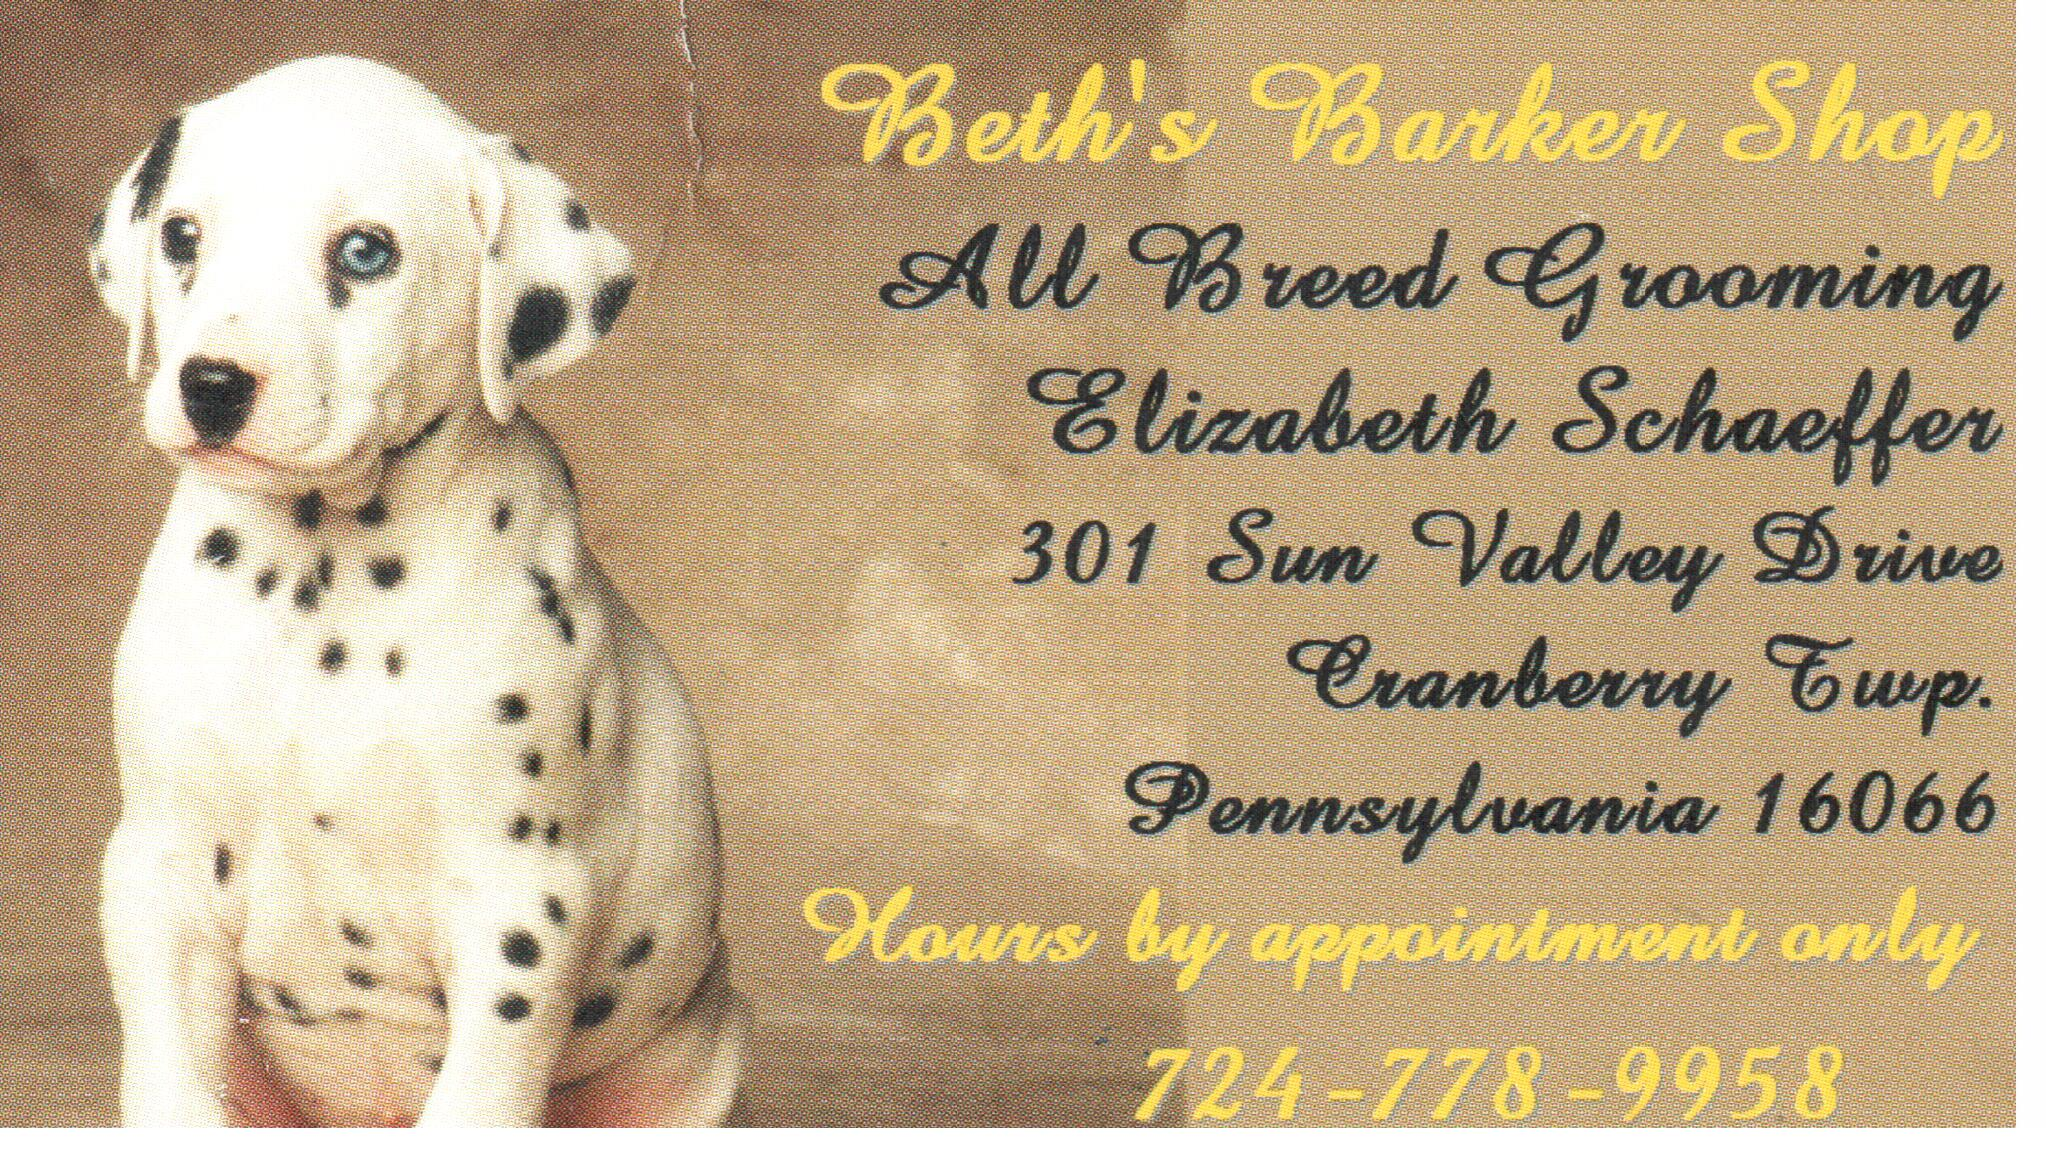 Beth's Barker Shop, Cranberry Township